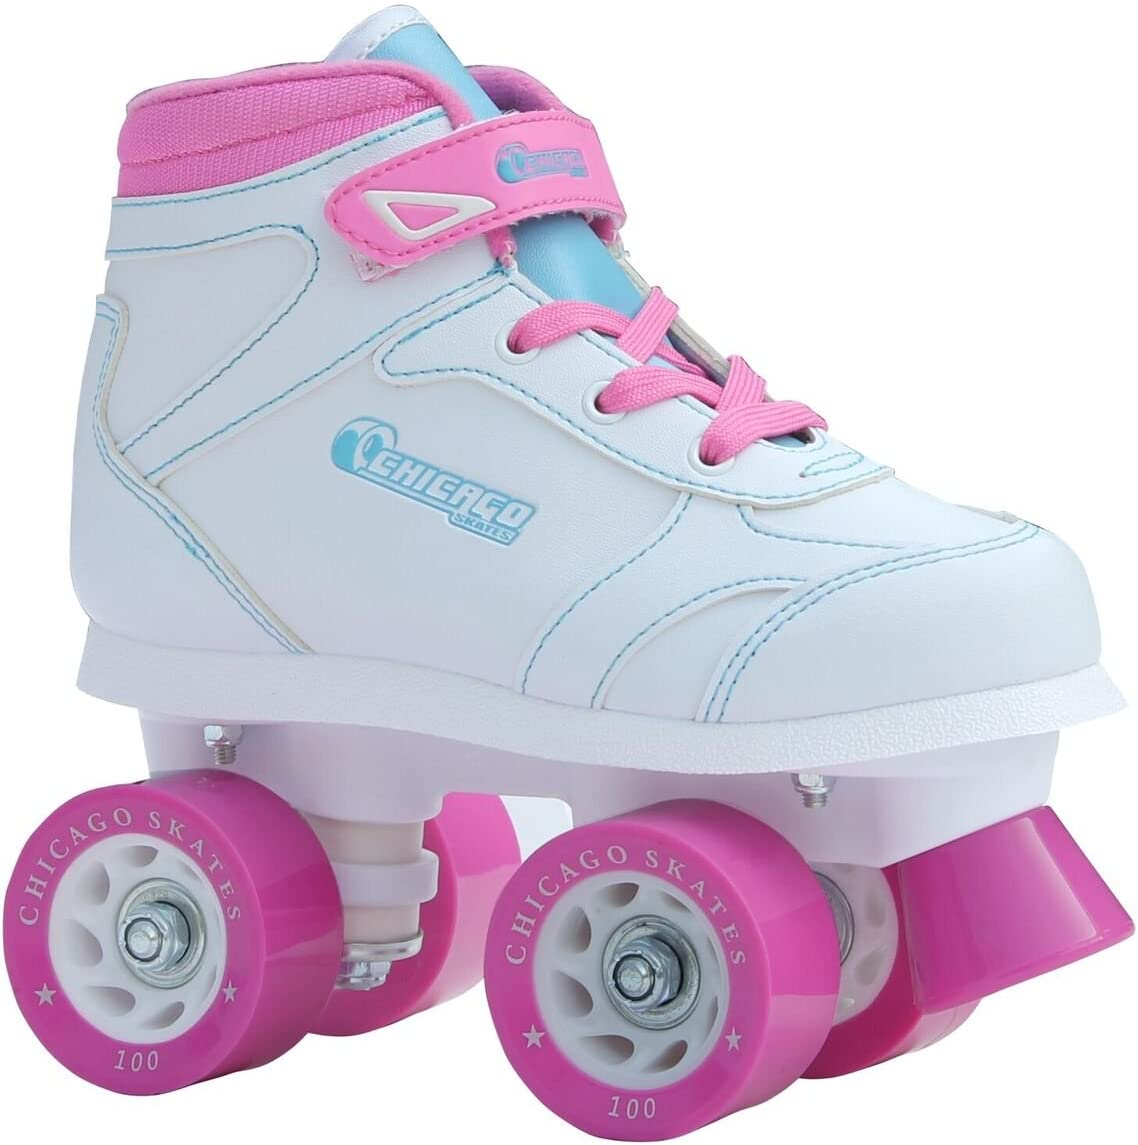 Chicago Girls Sidewalk Roller Skate – White Youth Quad Skates